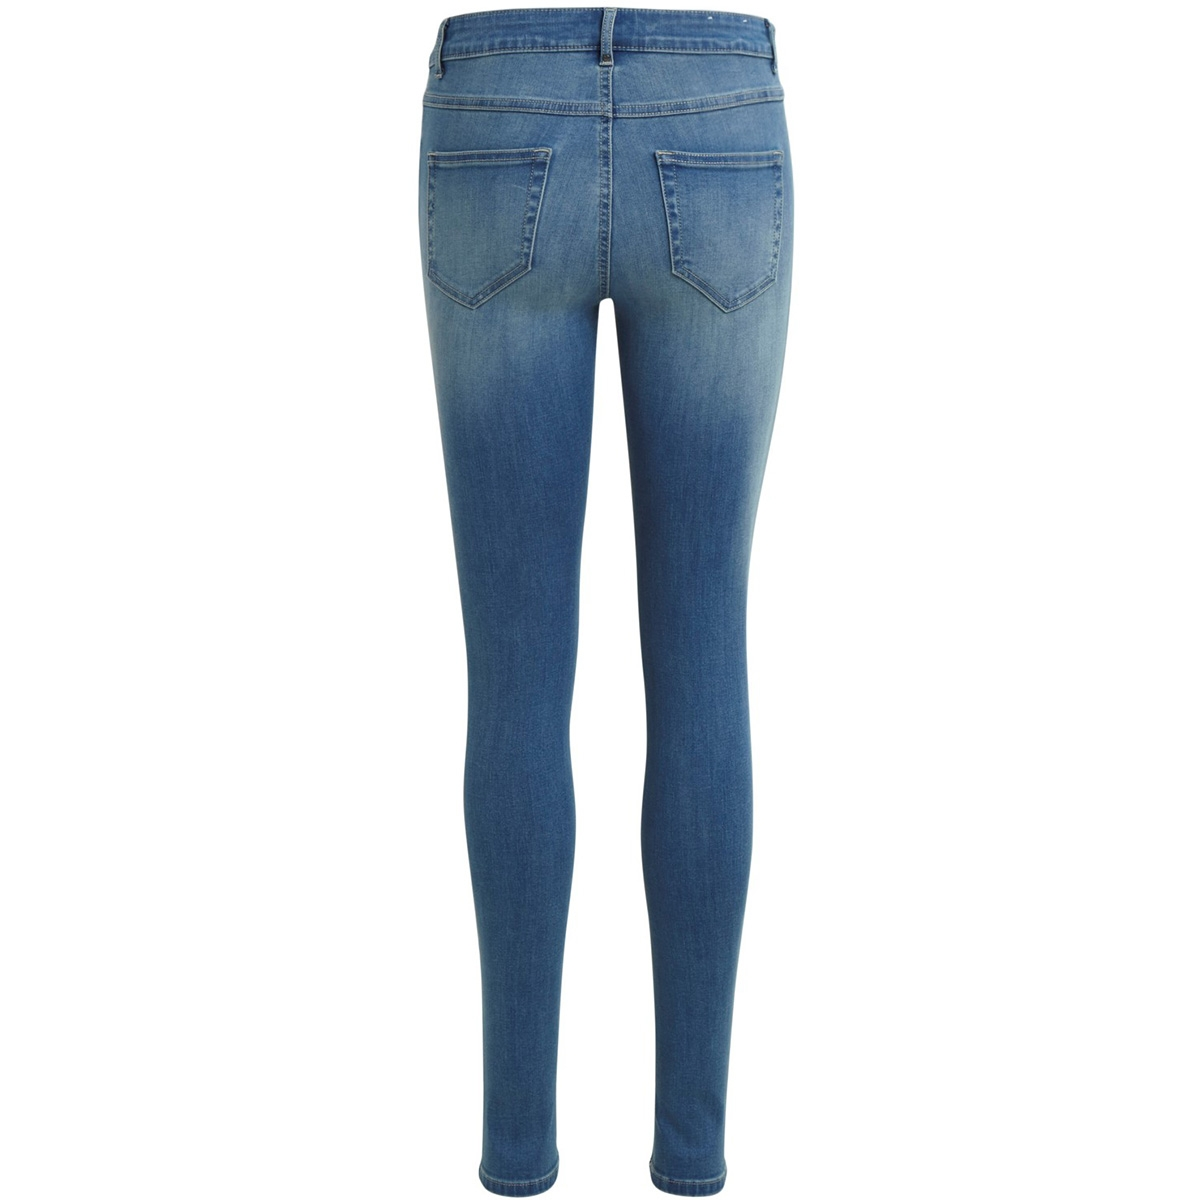 vicommit rw slim hy2545 mb - noos 14038996 vila jeans medium blue denim